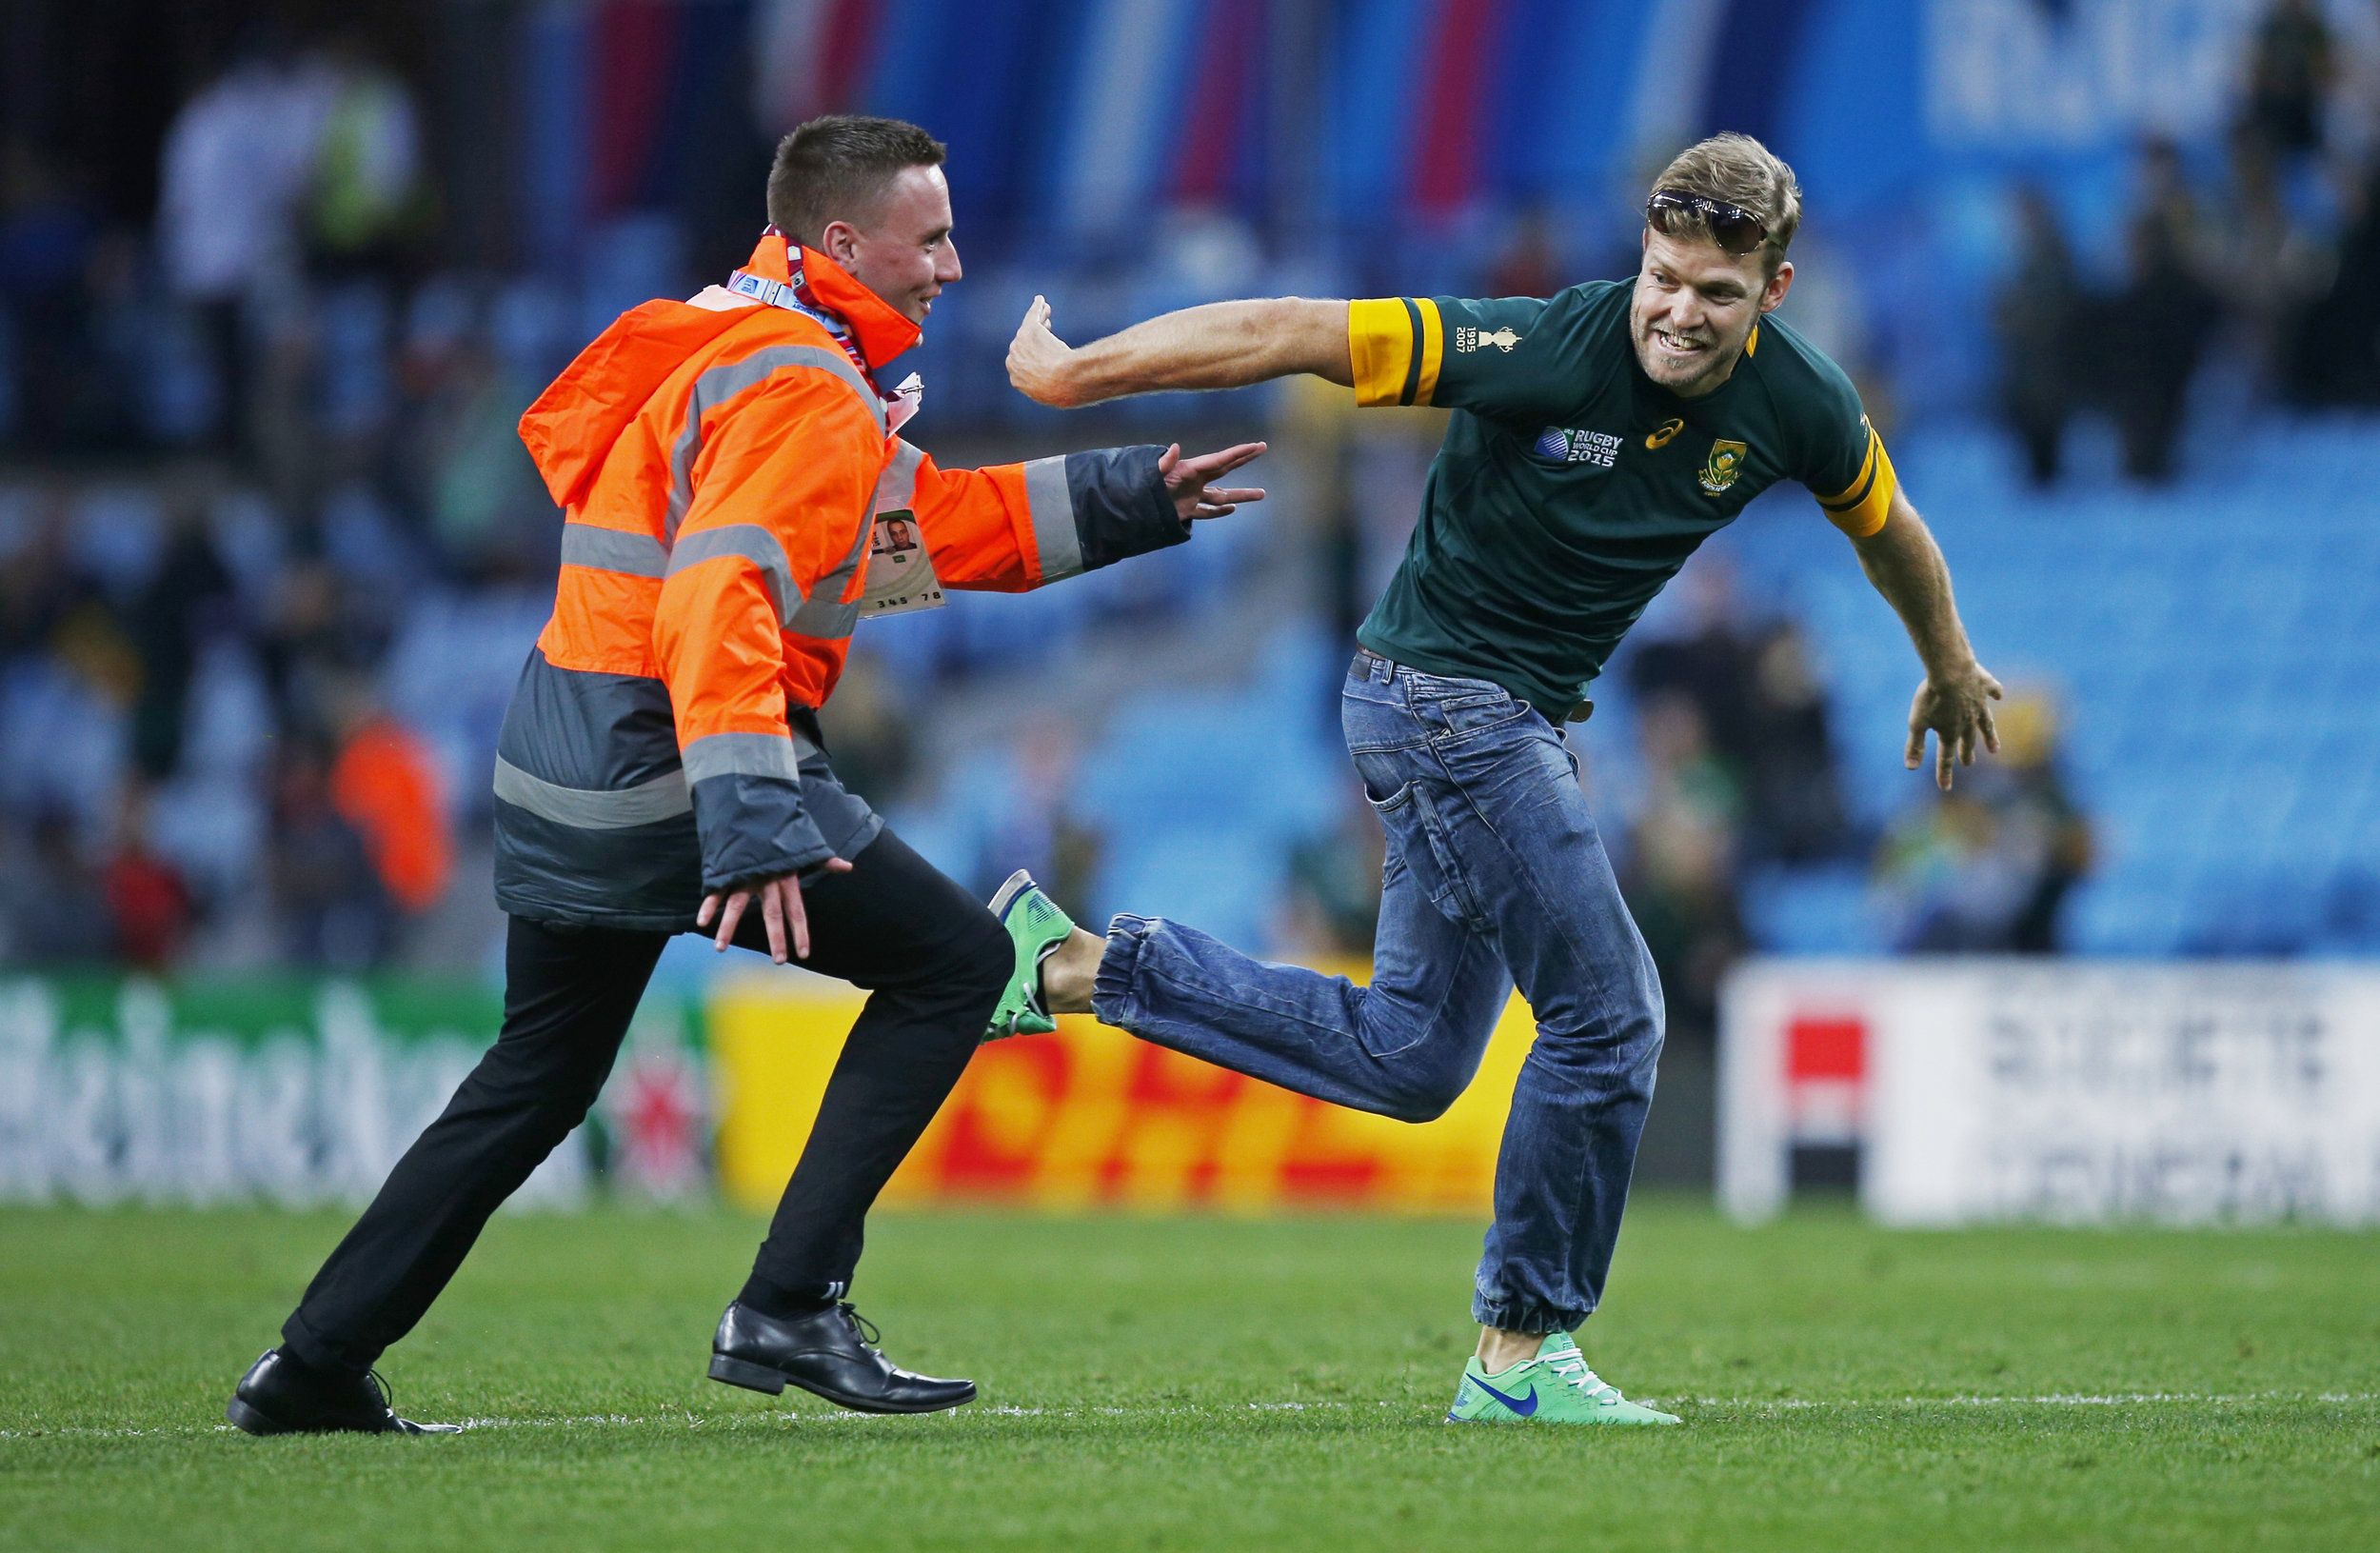 A South African rugby fan invades the pitch during his nation's 2015 World Cup clash with Samoa at Villa Park, Birmingham England.  Image supplied by Action Images / Peter Cziborra.